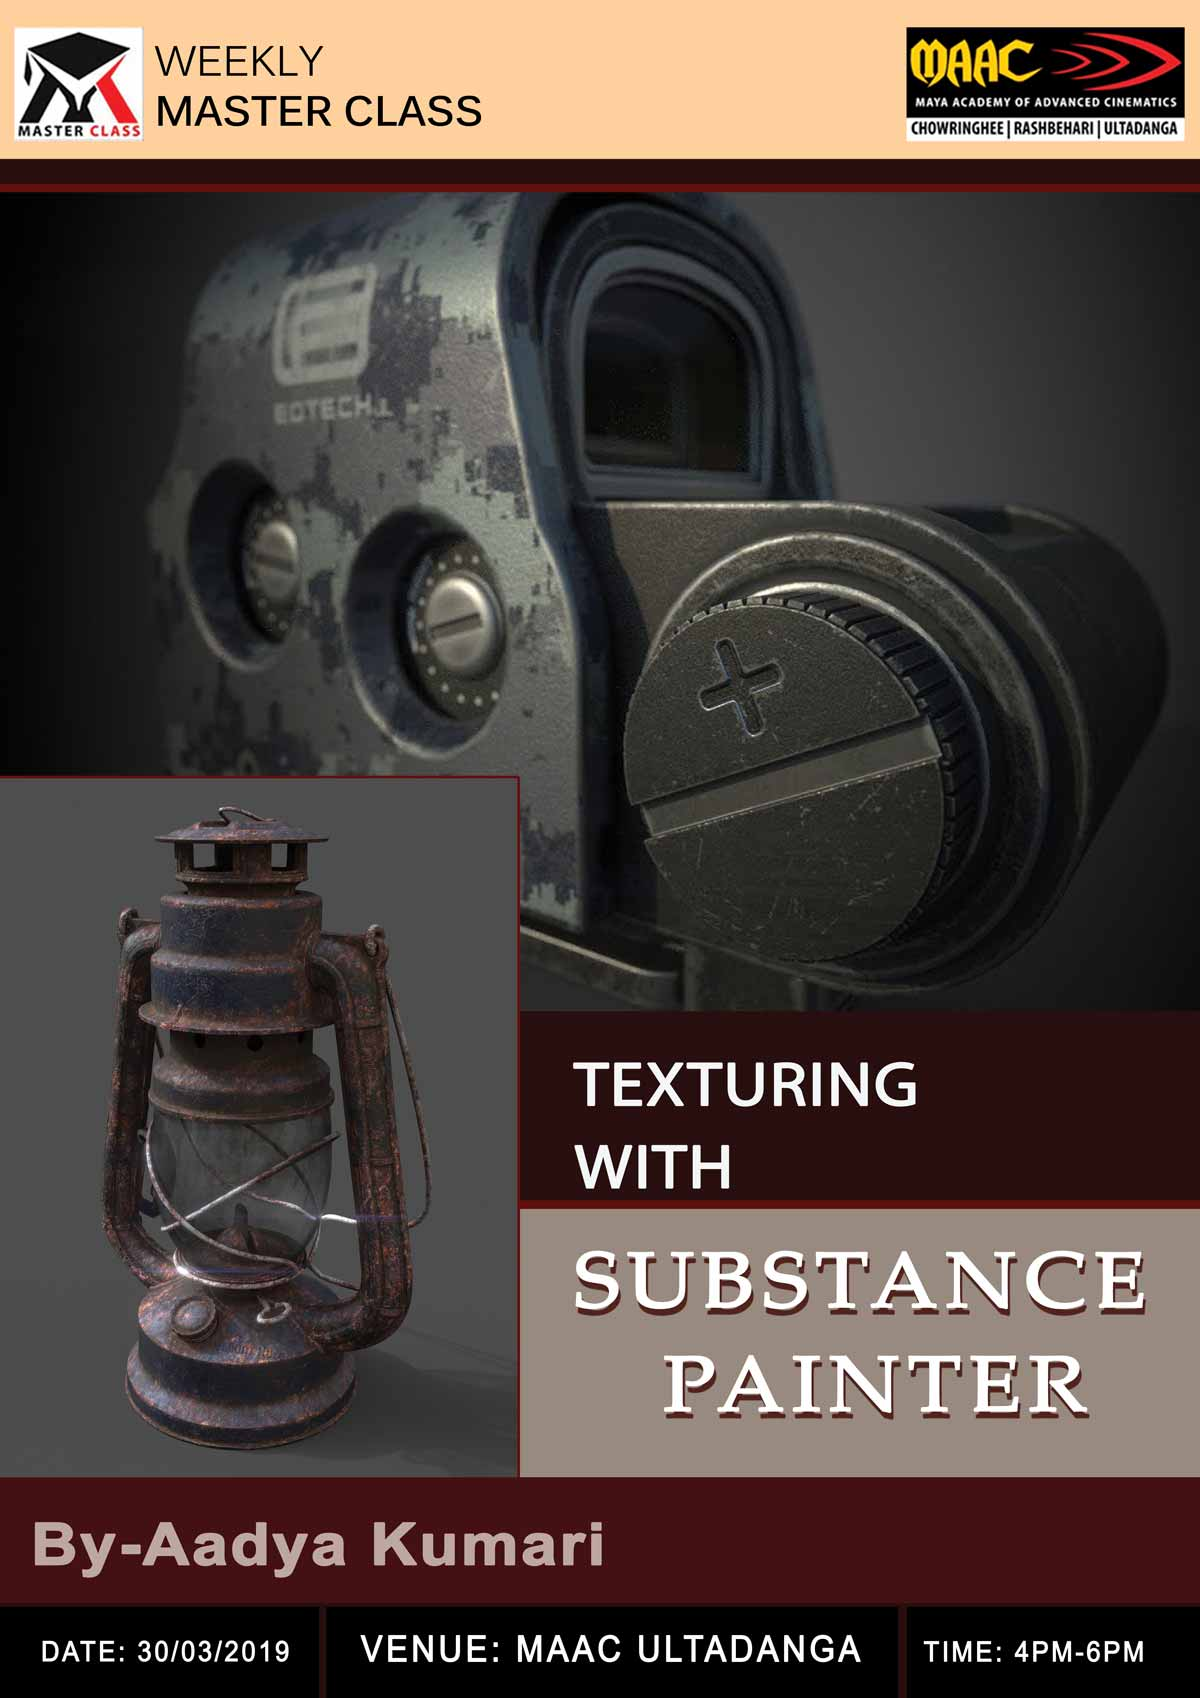 Weekly Master Class on Texturing with Substance Painter